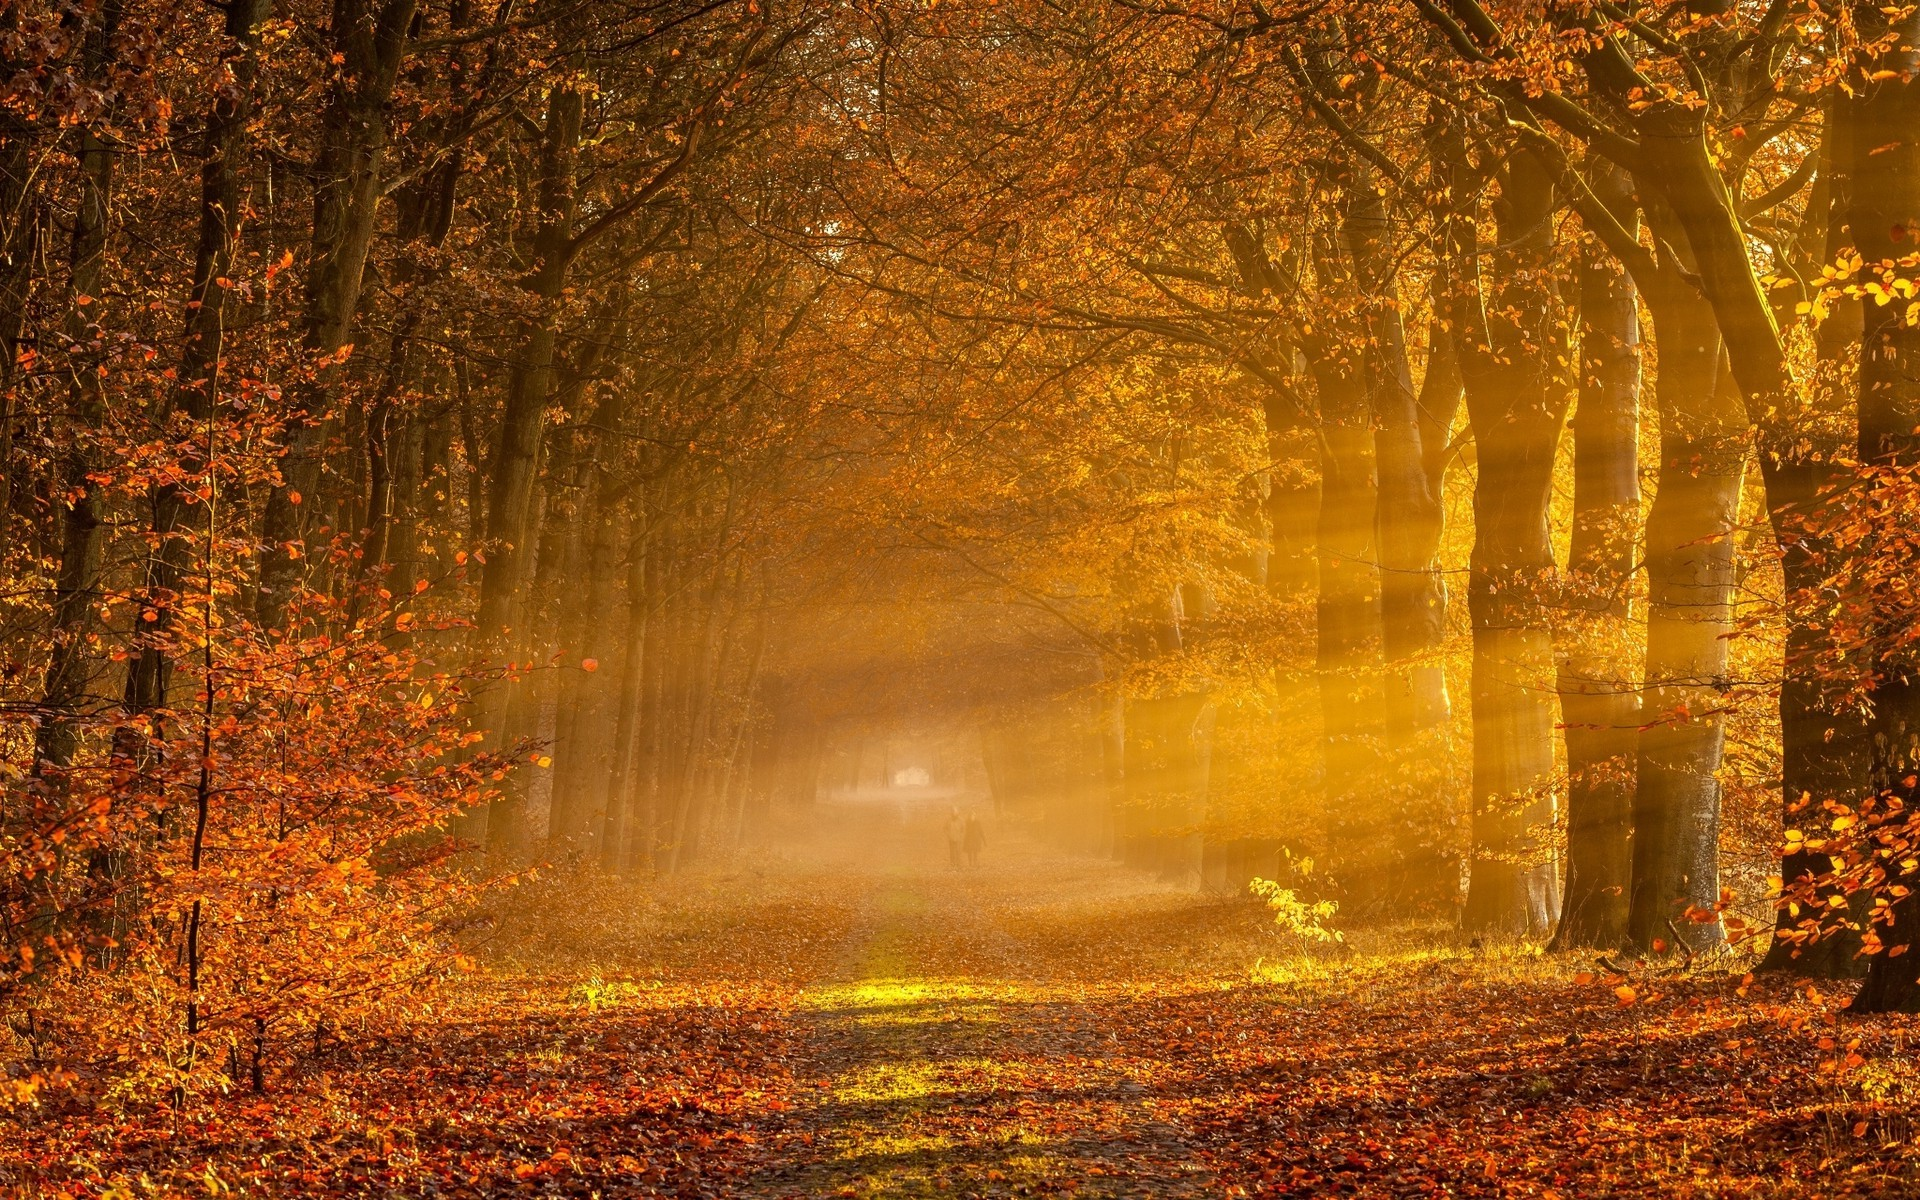 Nature Wallpaper Autumn Fall 1600x1200 Nature Landscape Sunrise Sun Rays Fall Gold Leaves